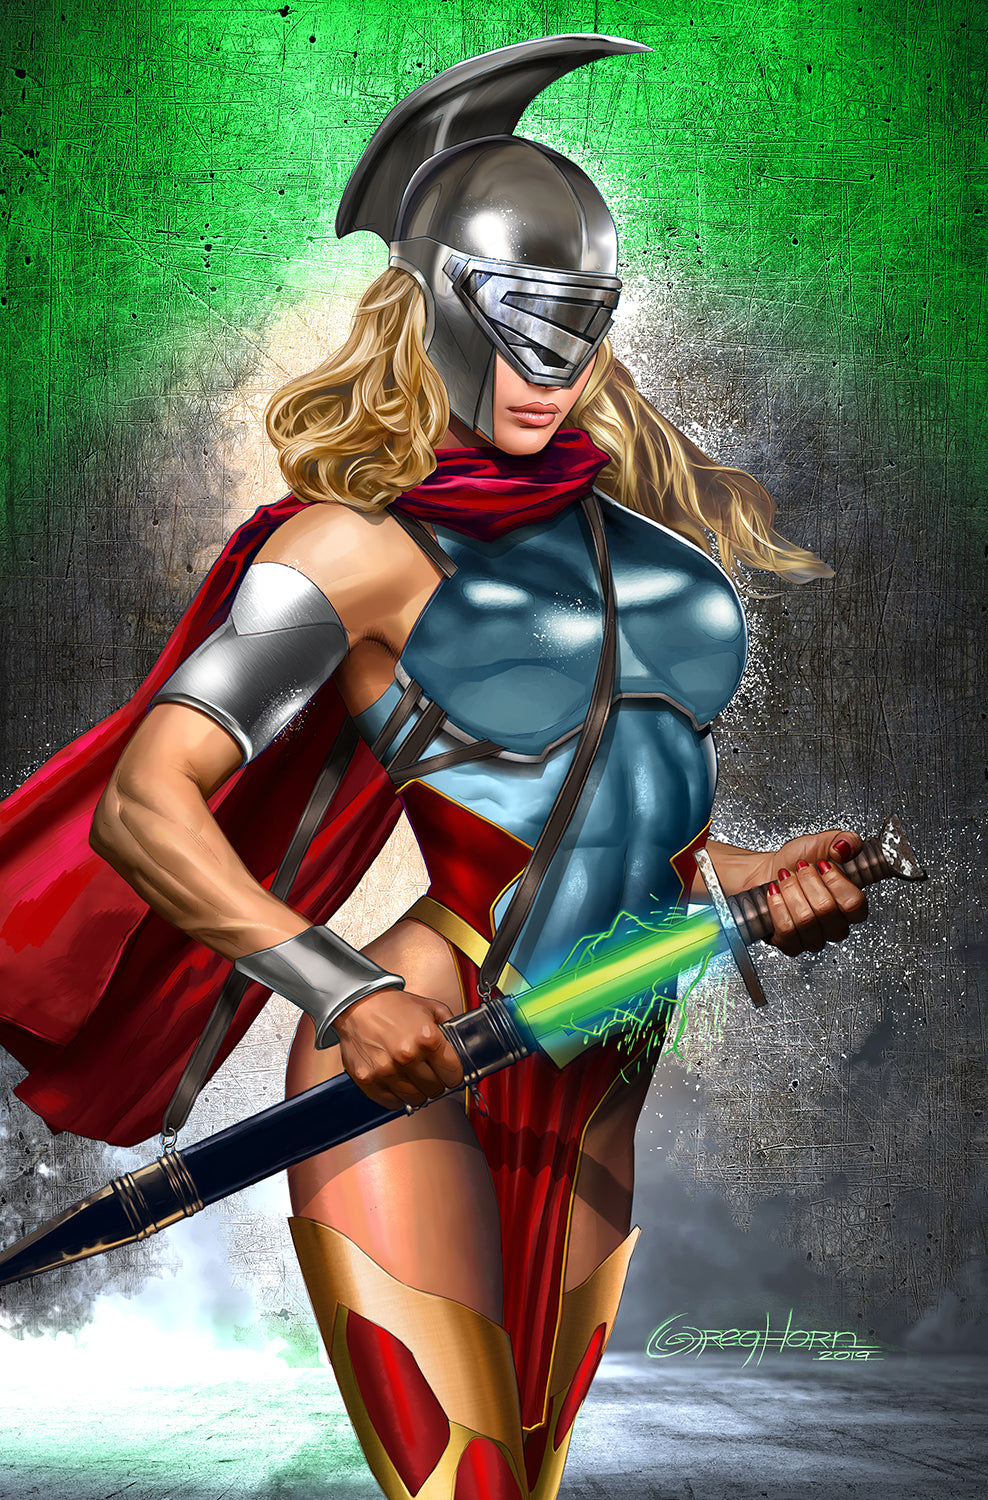 Batman/Superman - Metal Supergirl - High Quality 11 x 17